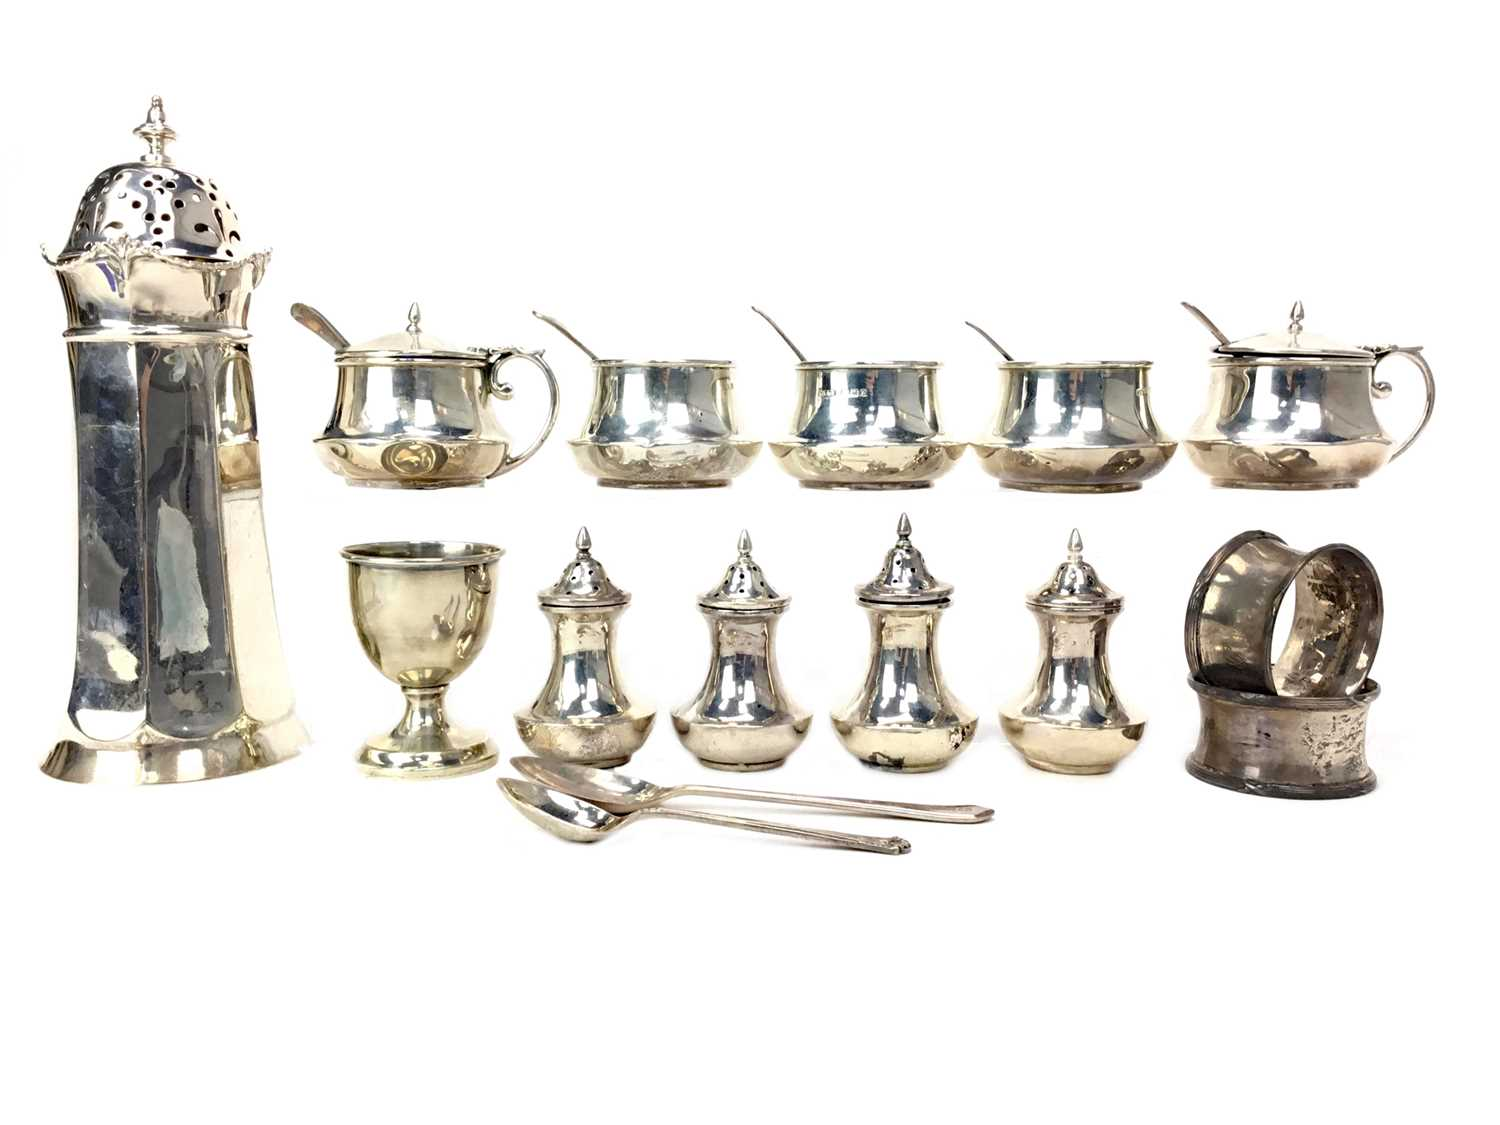 Lot 425 - A LOT OF SILVER CONDIMENT JARS, SHAKERS AND NAPKIN RINGS